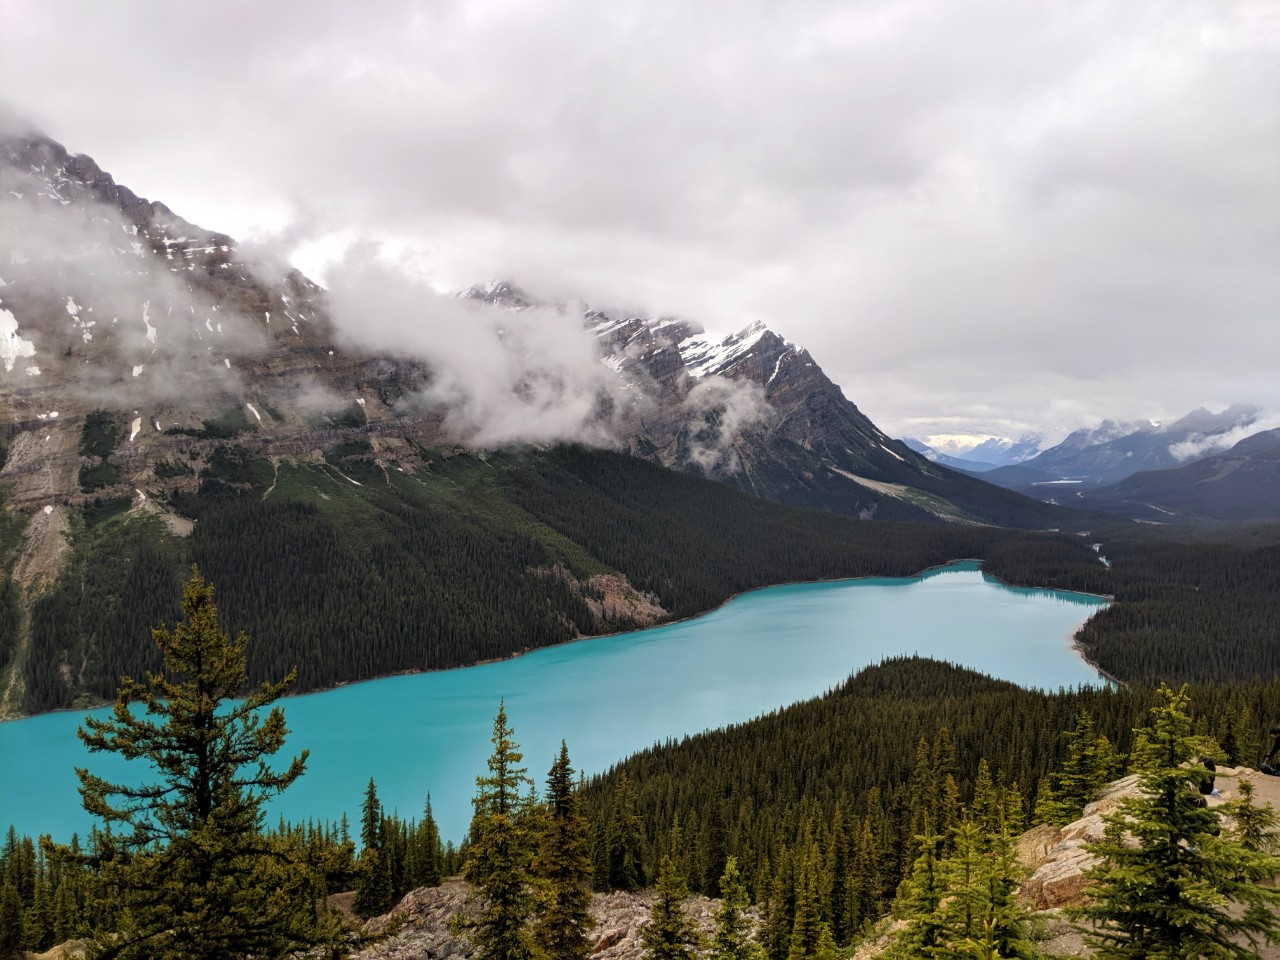 Turquoise lake with mist and snow capped mountains